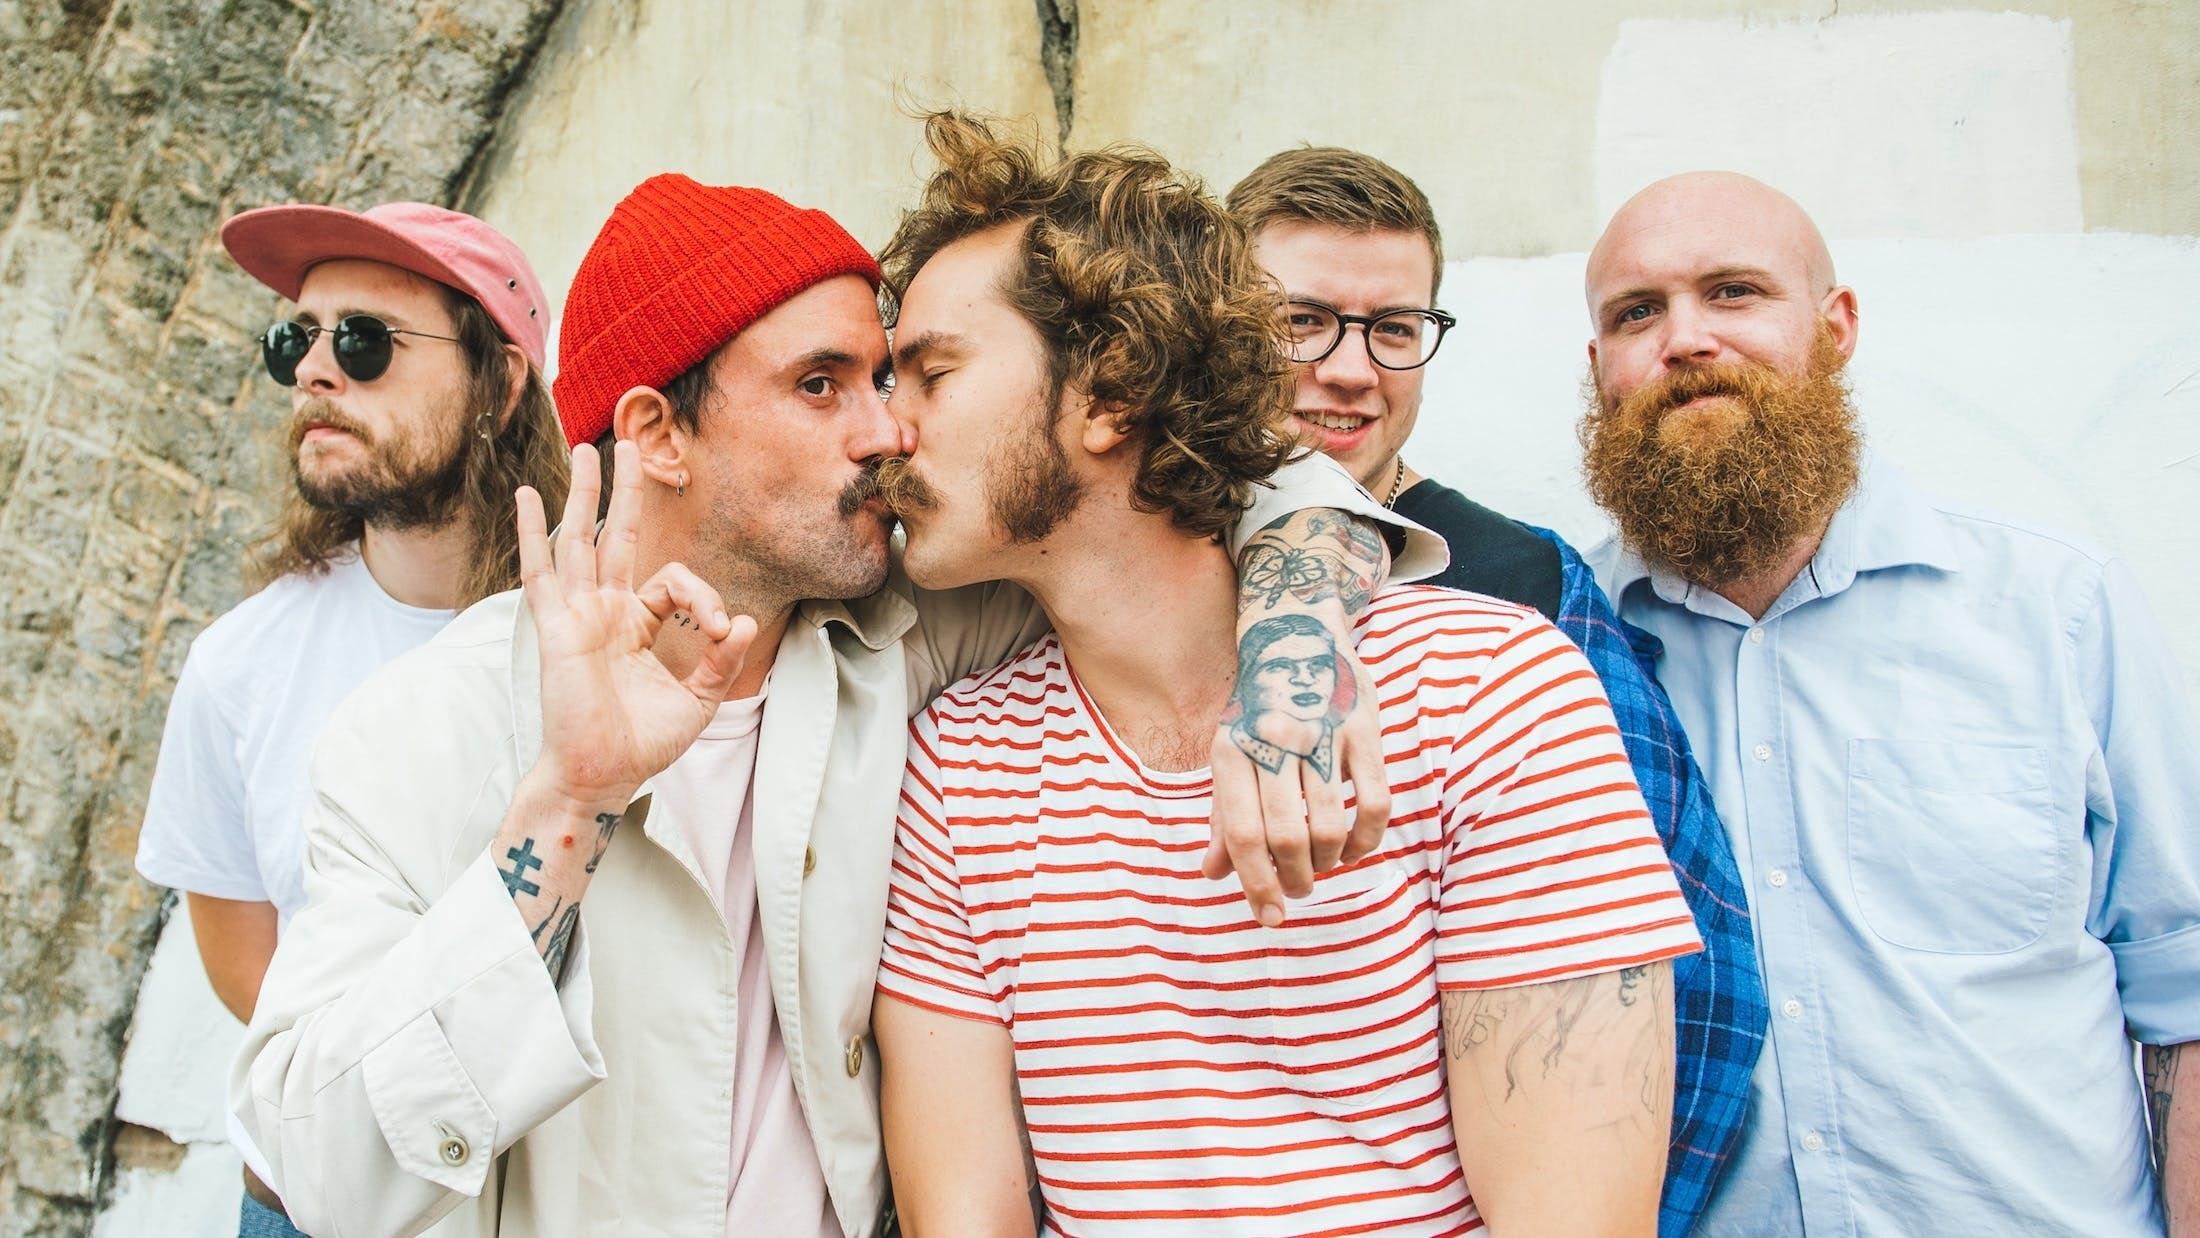 HAPPINESS IS ALL THE RAGE: IDLES' JOE TALBOT ON TOXIC MASCULINITY